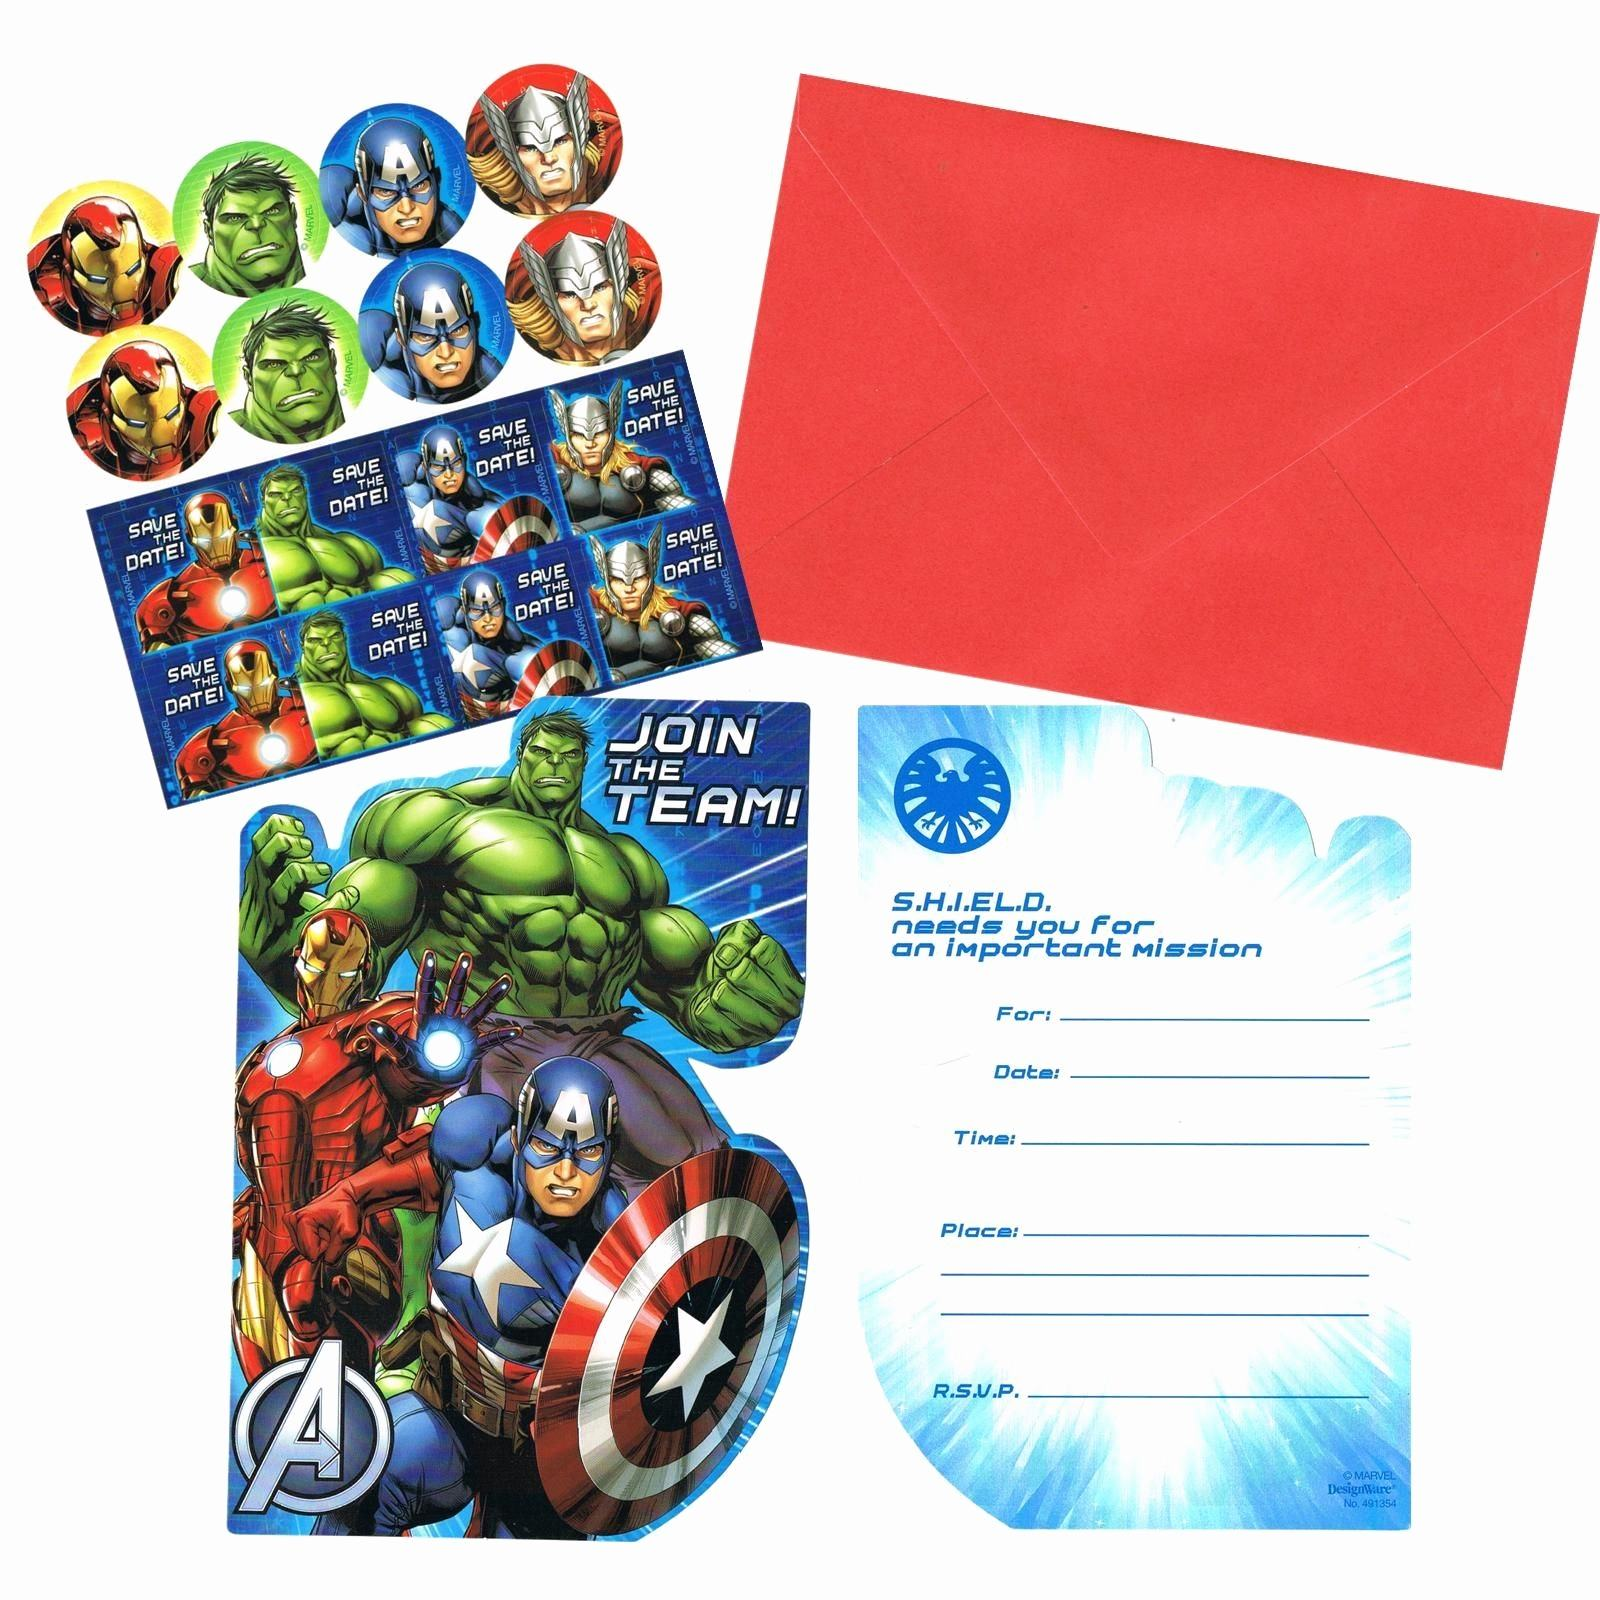 avengers birthday card template ; marvel-birthday-party-invitations-example-for-free-avengers-birthday-card-template-elegant-marvel-party-invitations-of-marvel-birthday-party-invitations